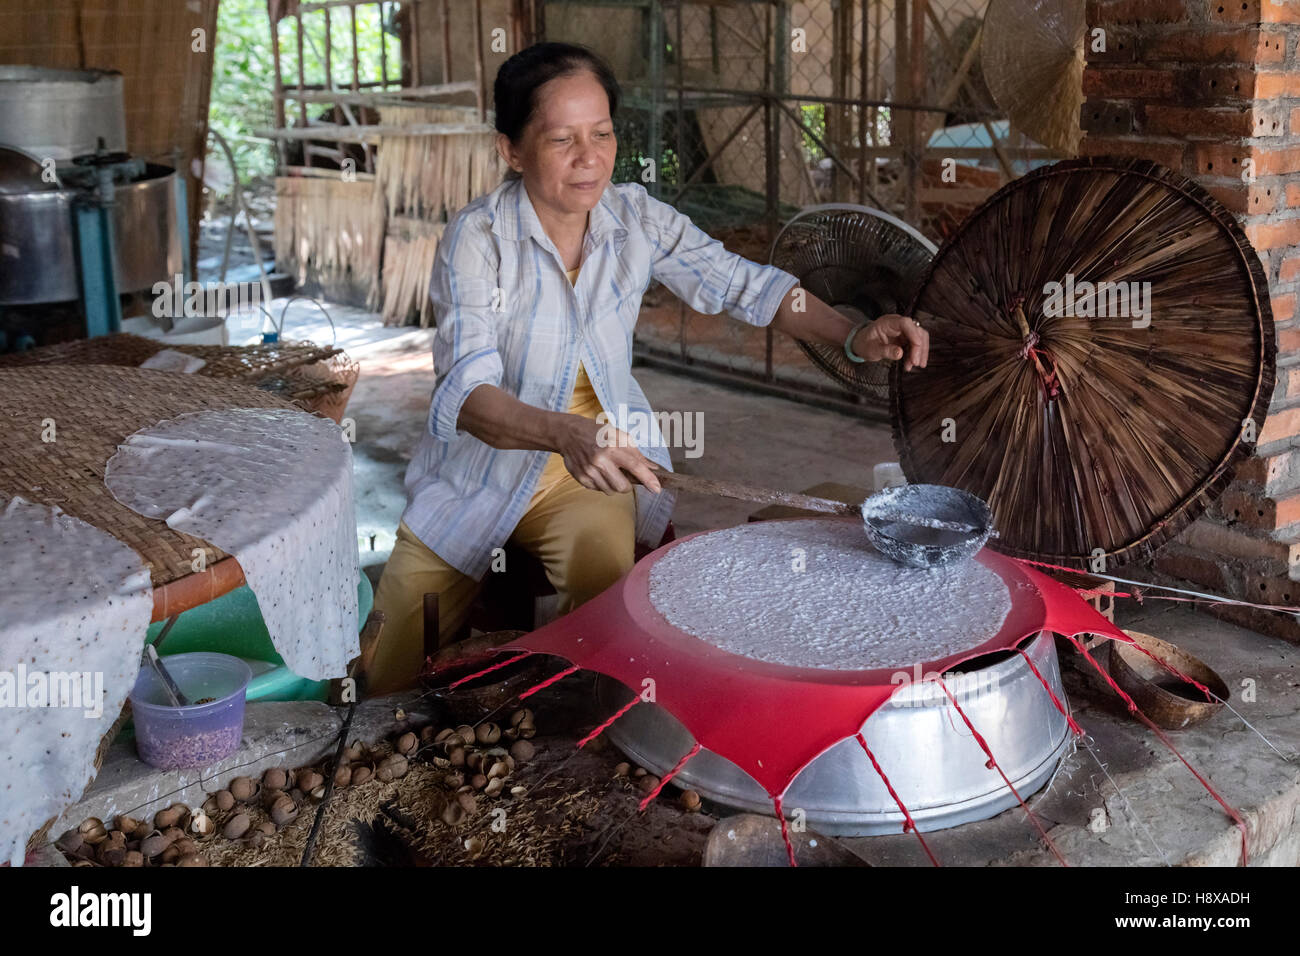 woman preparing rice noodles in Cai Be, Mekong Delta, Vietnam, Asia - Stock Image